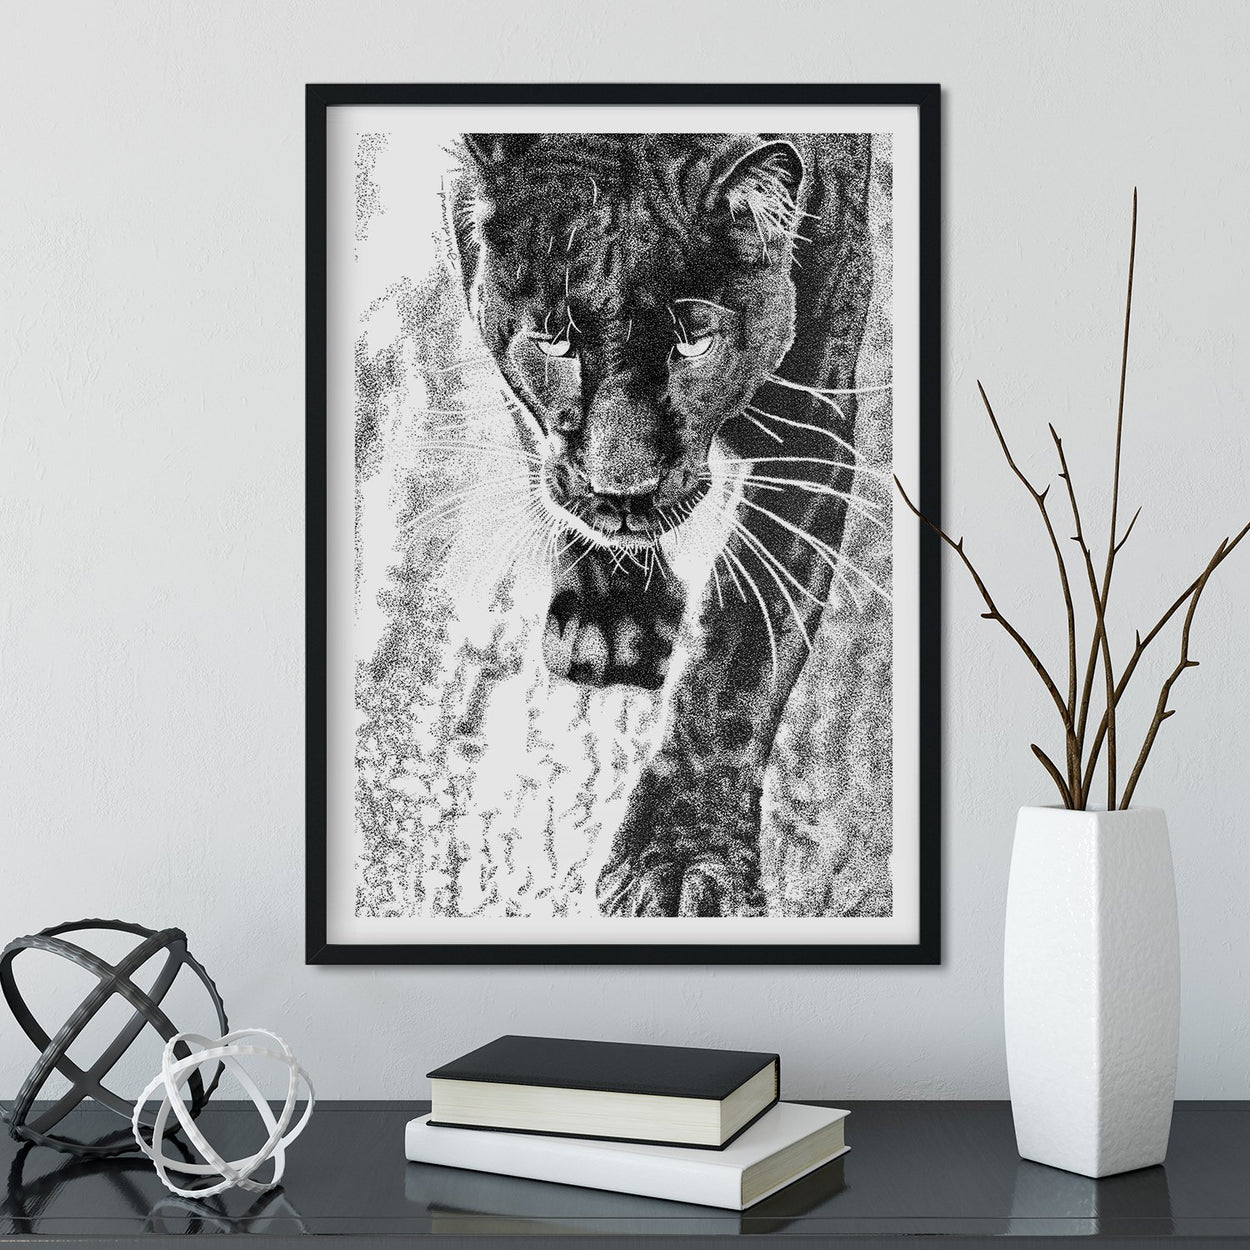 Black Leopard Wall Art Framed - The Thriving Wild